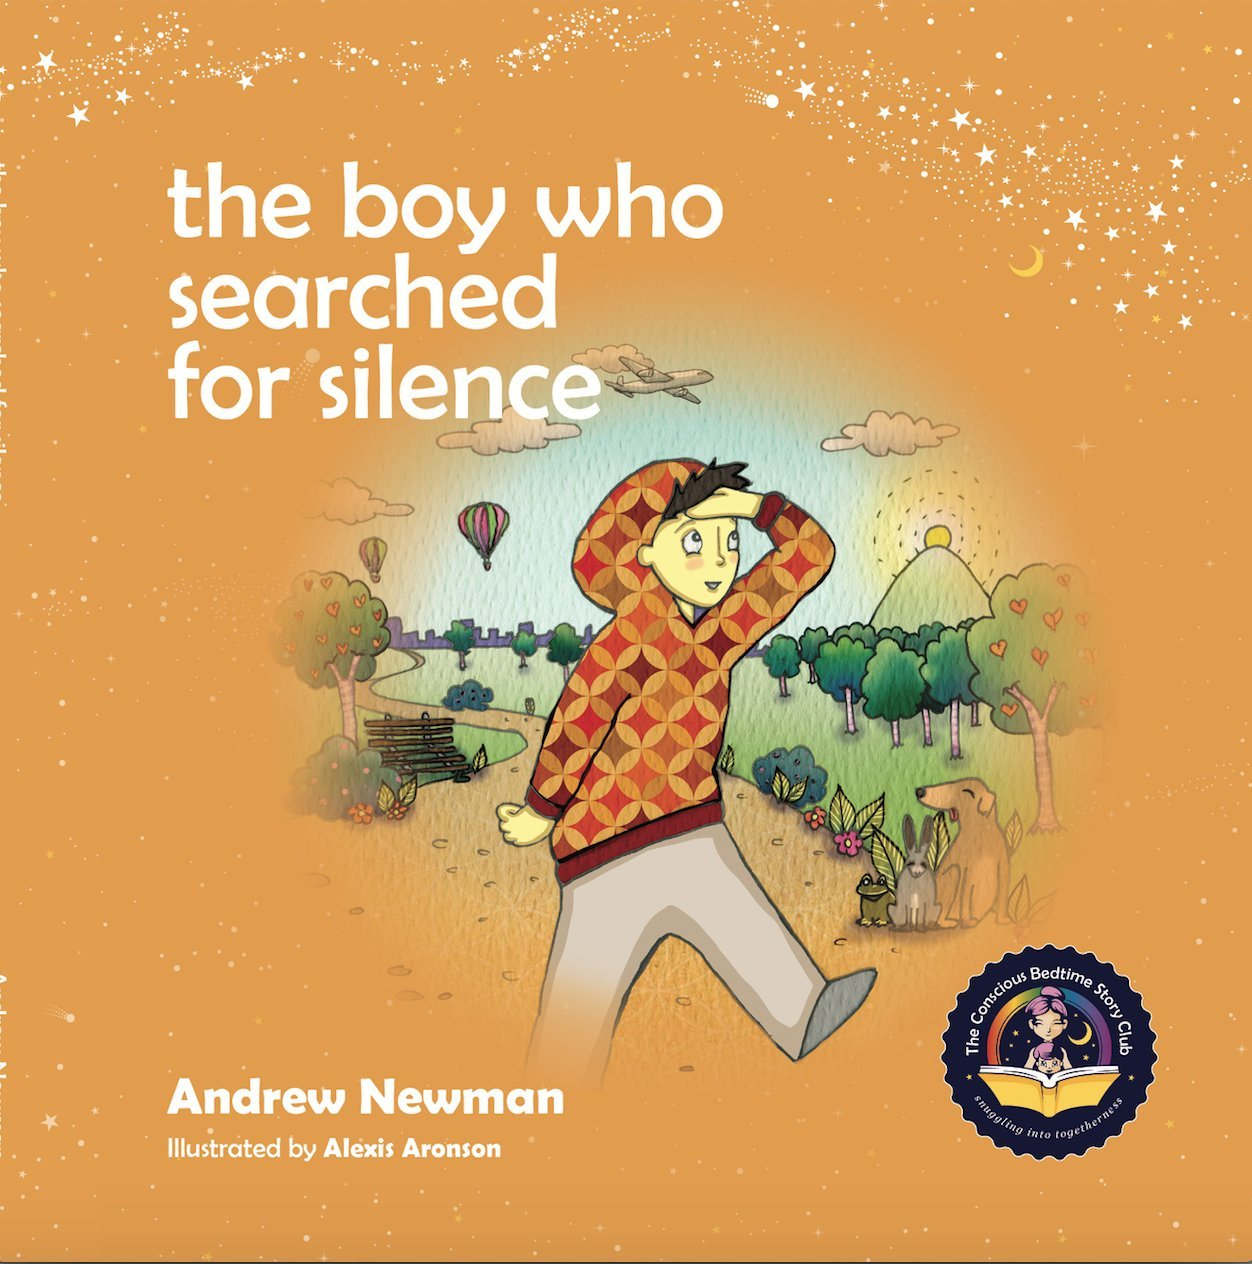 The Boy Who Searched for Silence.jpg